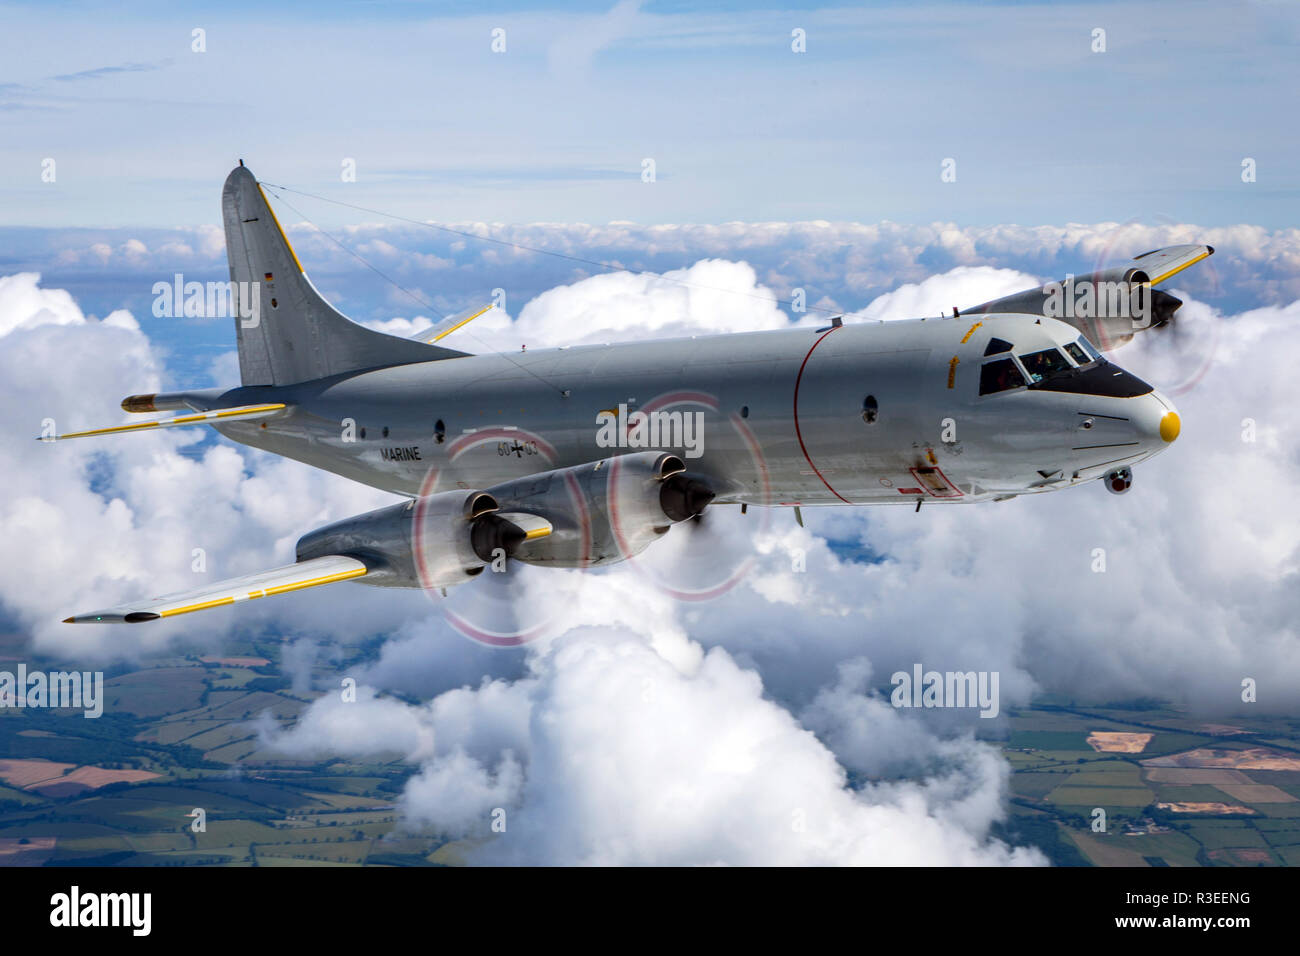 German Navy, Lockheed P-3 Orion, a four-engine turboprop anti-submarine and maritime surveillance aircraft developed for the United States Navy and in - Stock Image